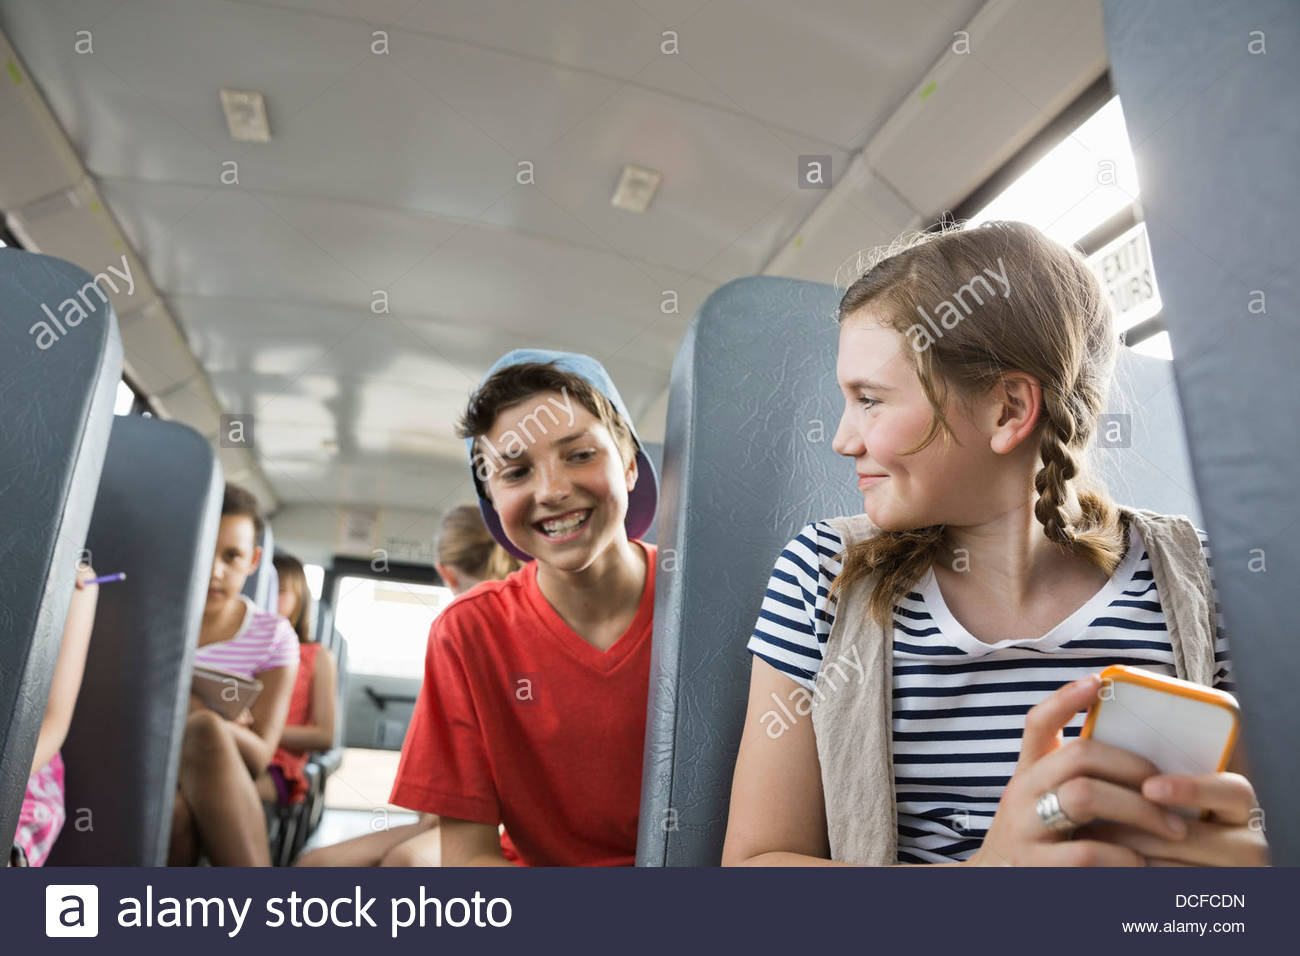 Girl hiding mobile phone from friend inside school bus - Stock Image